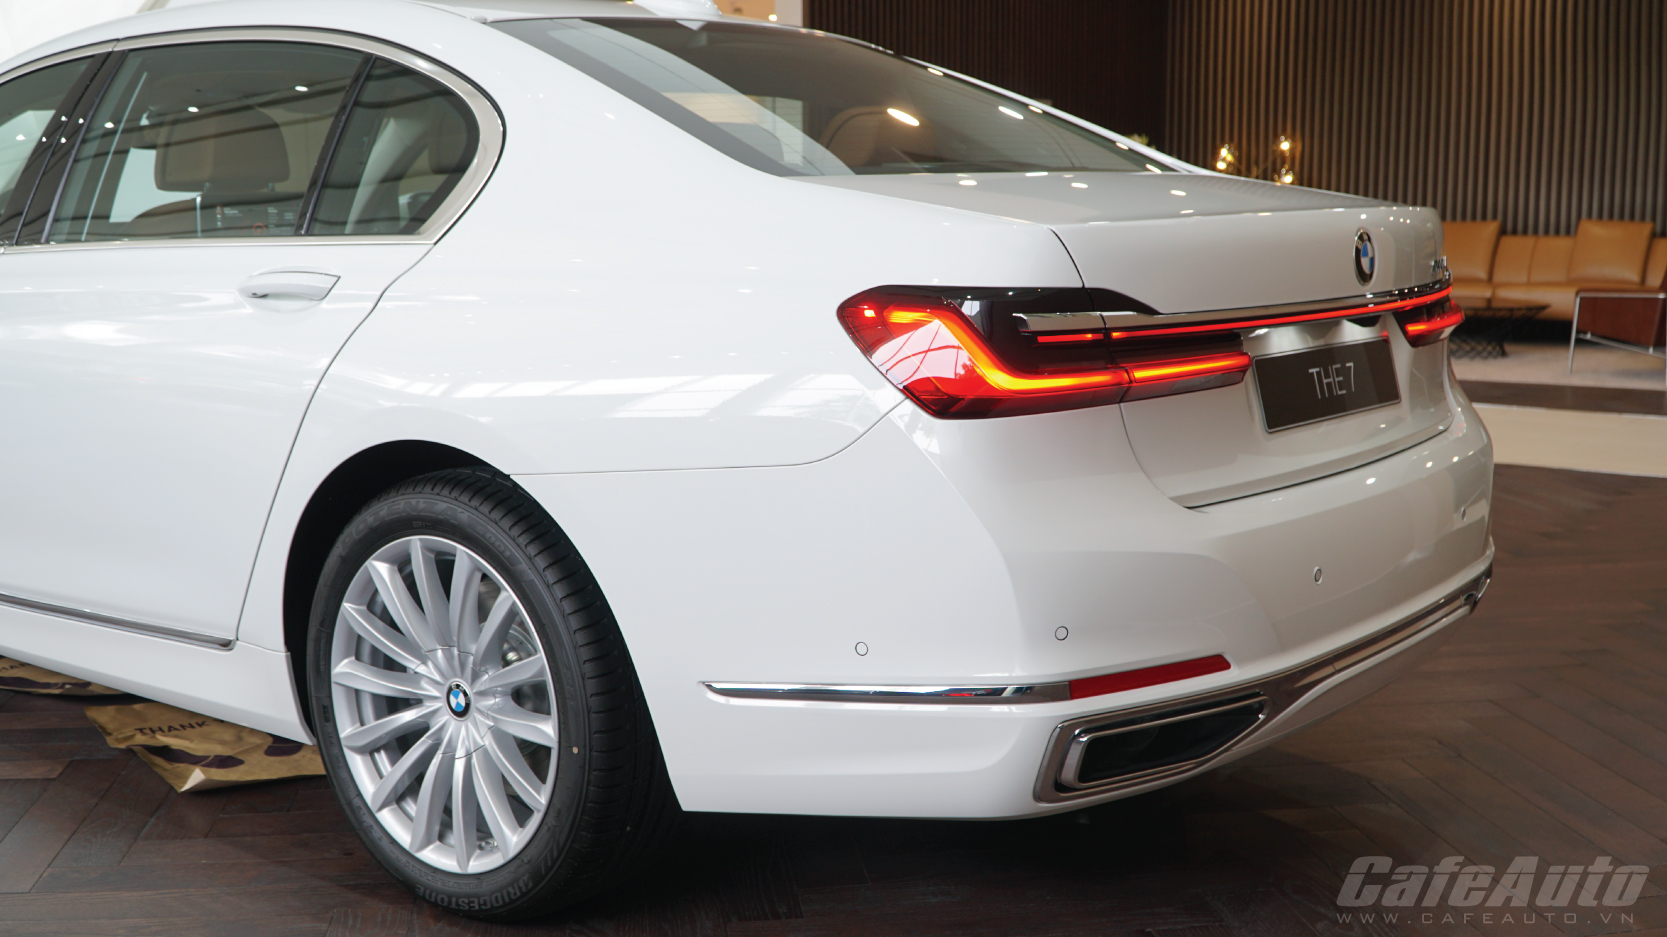 Can-Canh-BMW-740li-2020-more-luxury-hao-hoa-gia-5-6-ty-dong